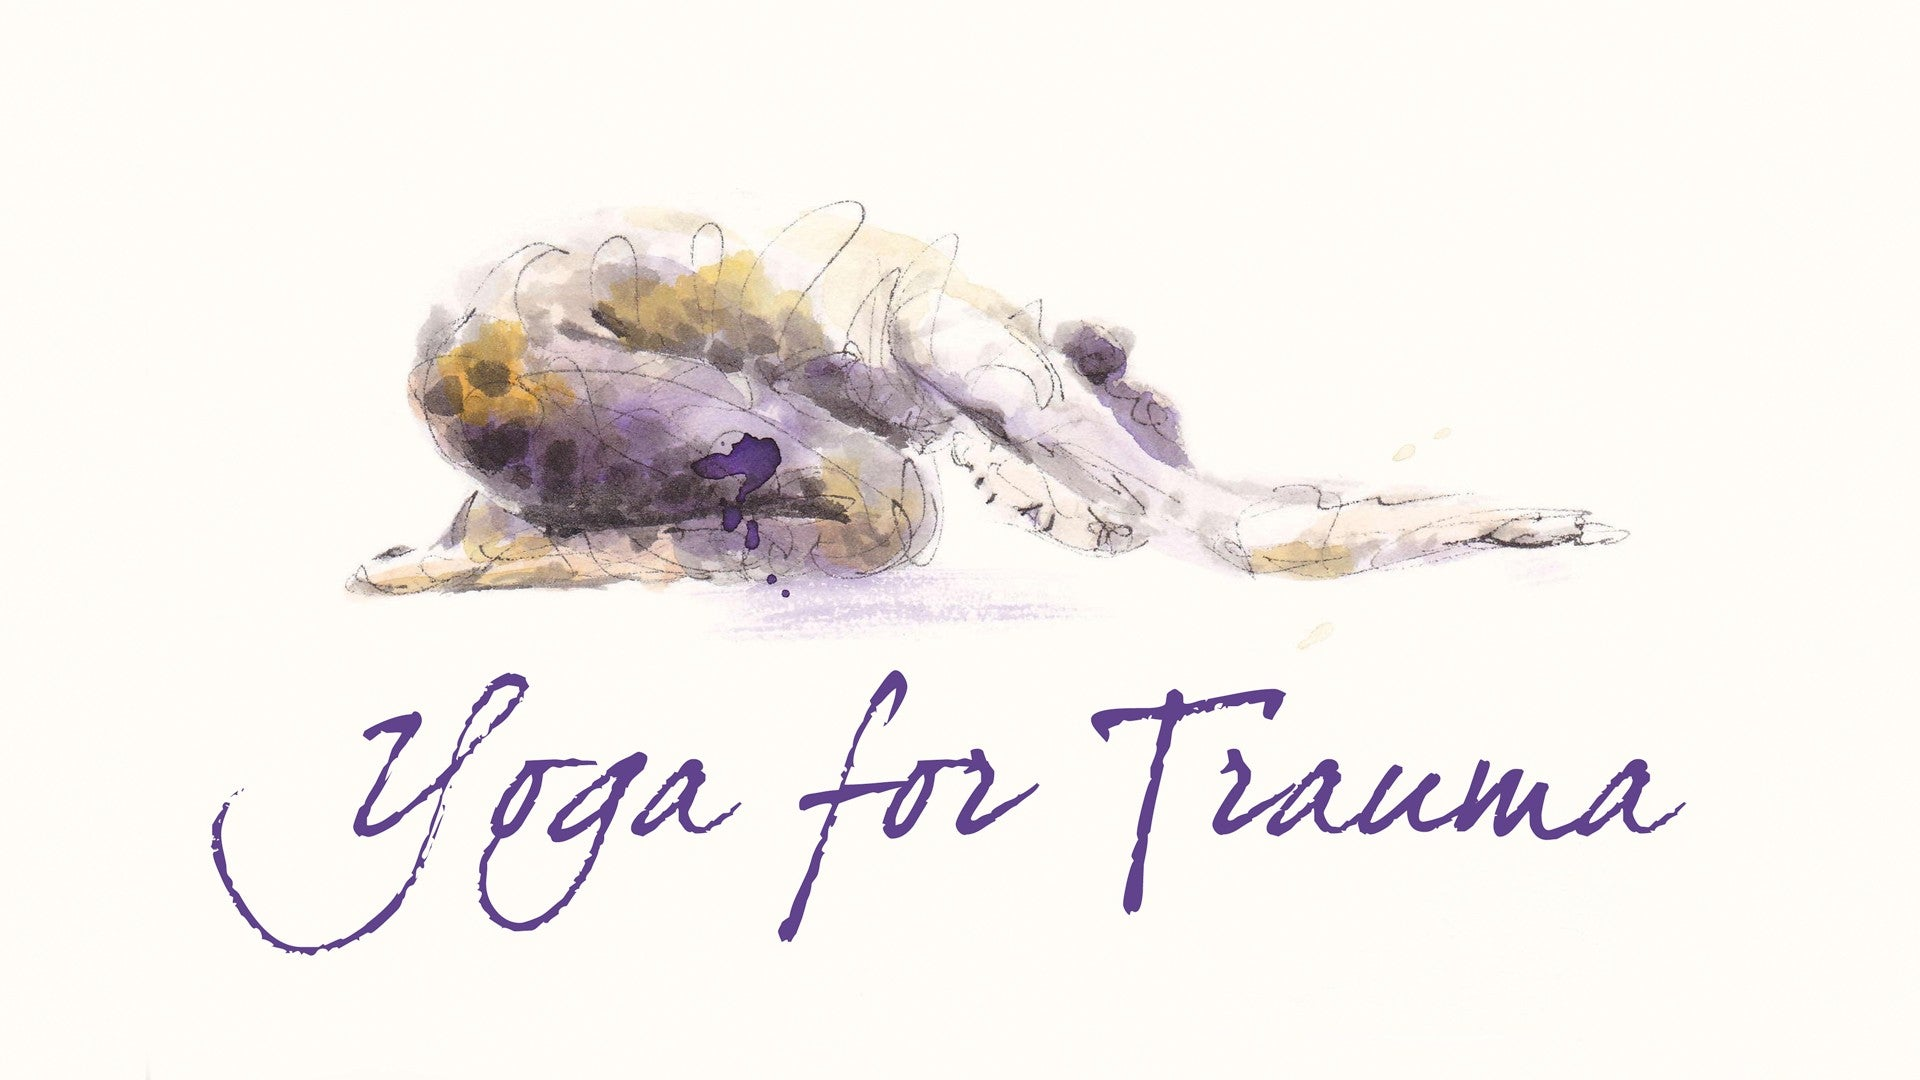 Yoga for Trauma Artwork